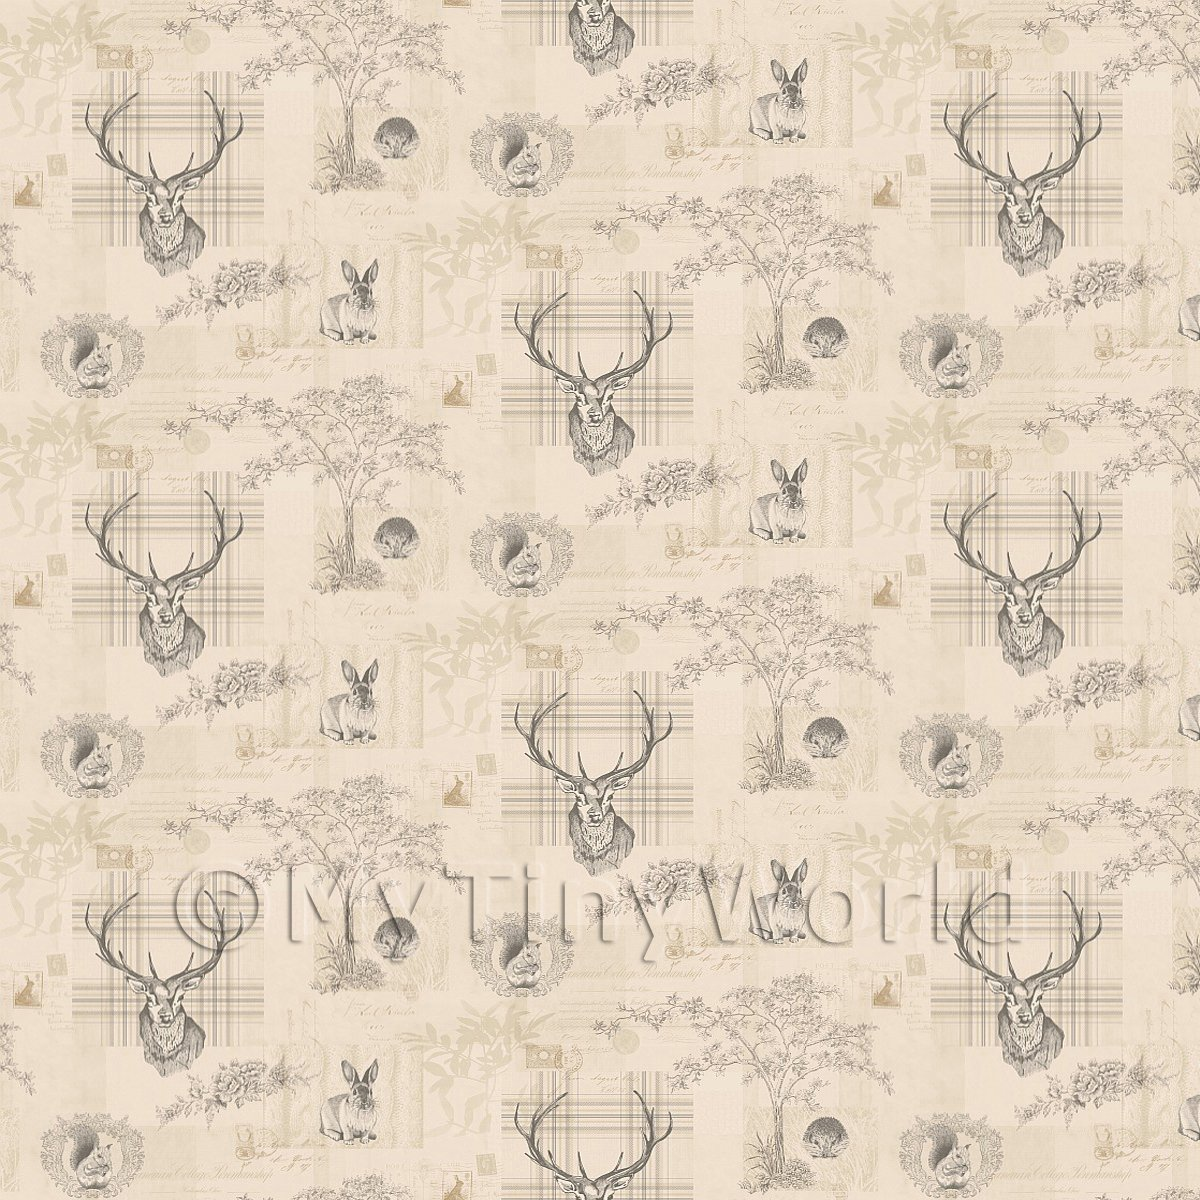 Pack of 5 Dolls House Beige And Black Highland Animal Wallpaper Sheets